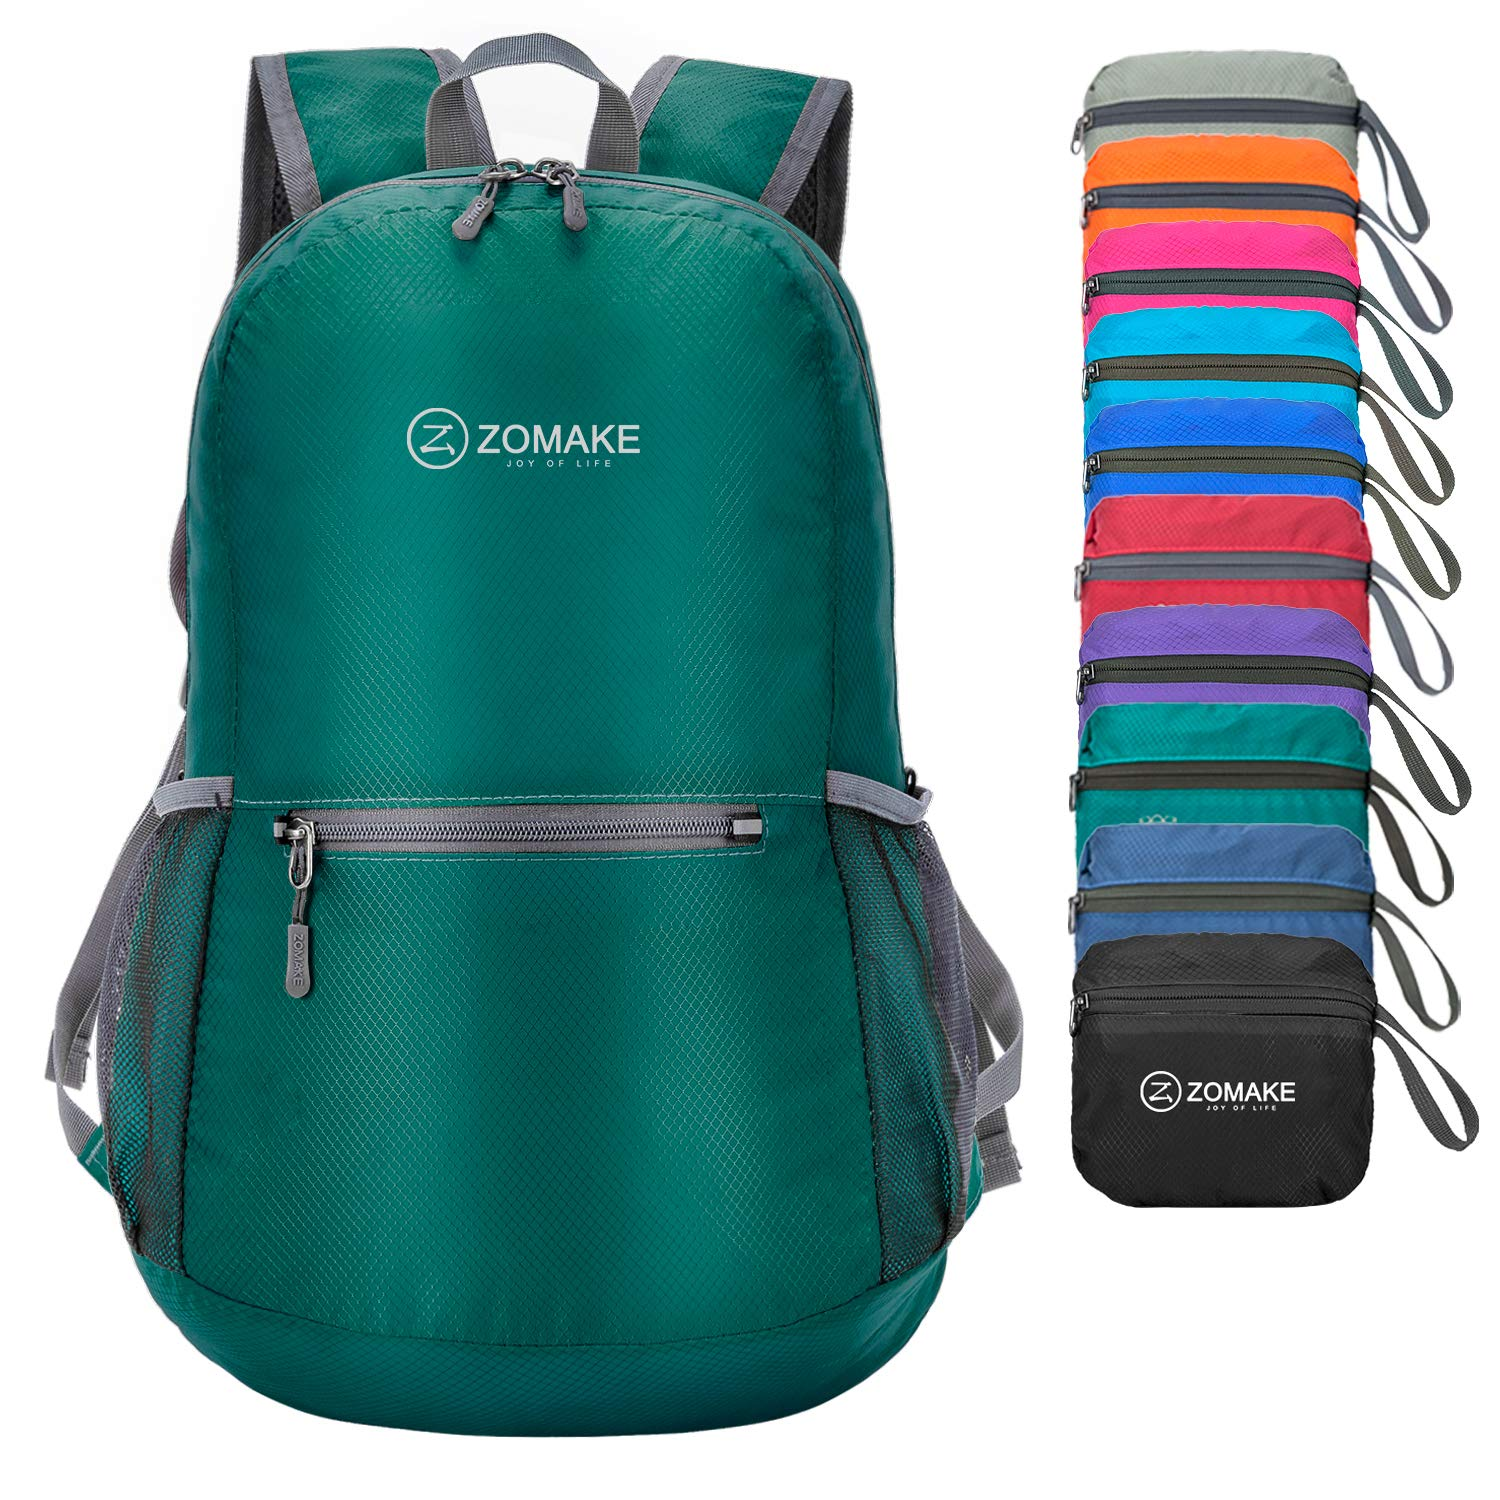 ZOMAKE Ultra Lightweight Packable Backpack Water Resistant